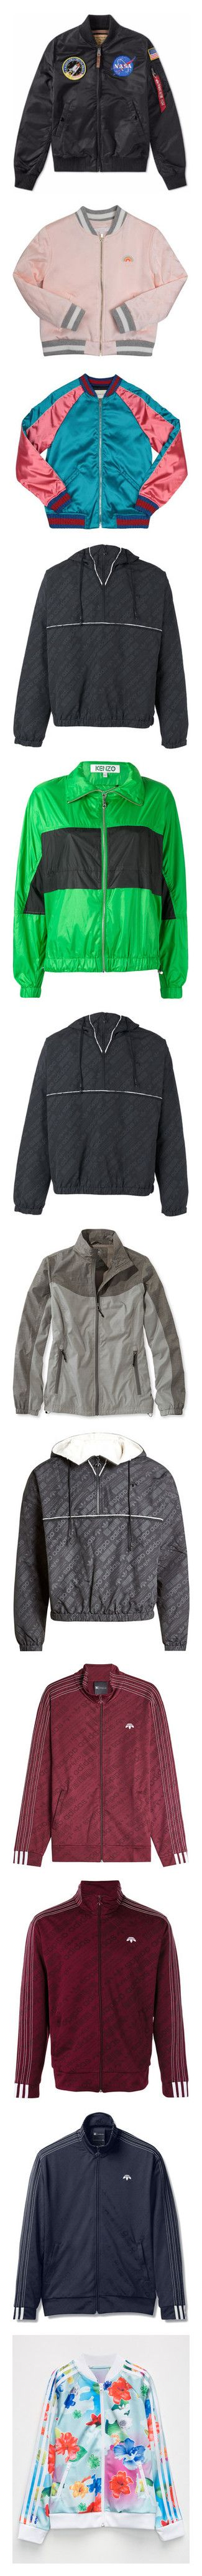 """Jackets & Coats & Blazers 8.0"" by jaekoreoz ❤ liked on Polyvore featuring men's fashion, men's clothing, men's outerwear, men's jackets, mens nylon jacket, mens nylon bomber jacket, outerwear, jackets, sweaters and tops"